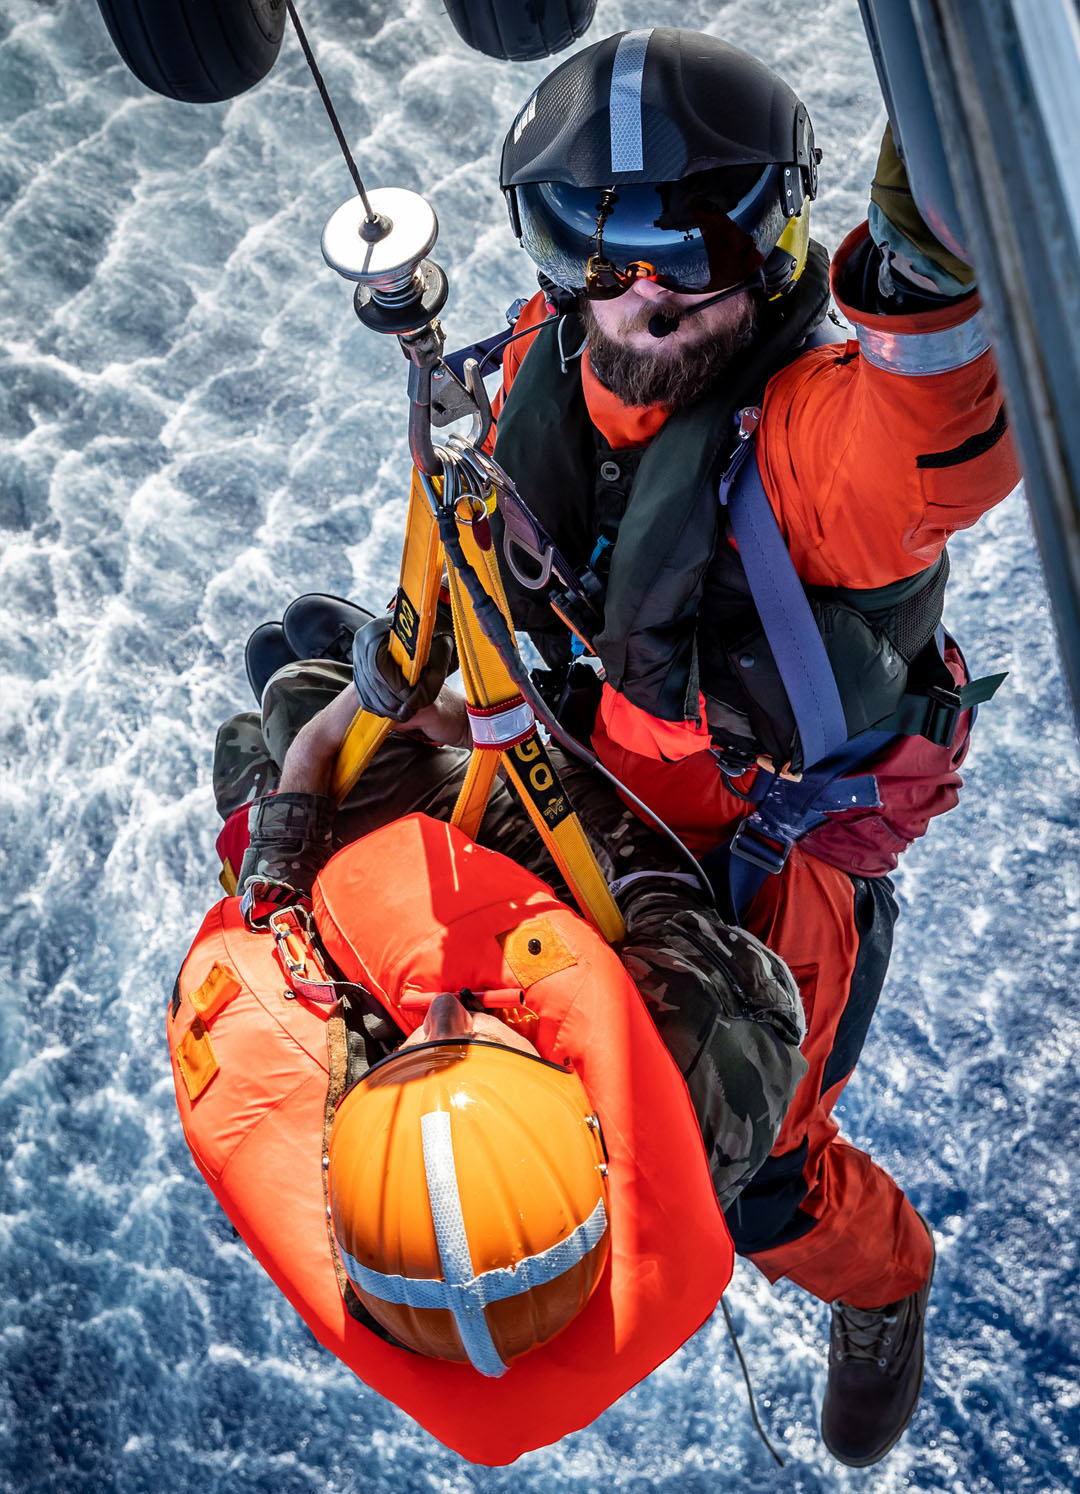 845 NAS conduct a Search and Rescue exercise